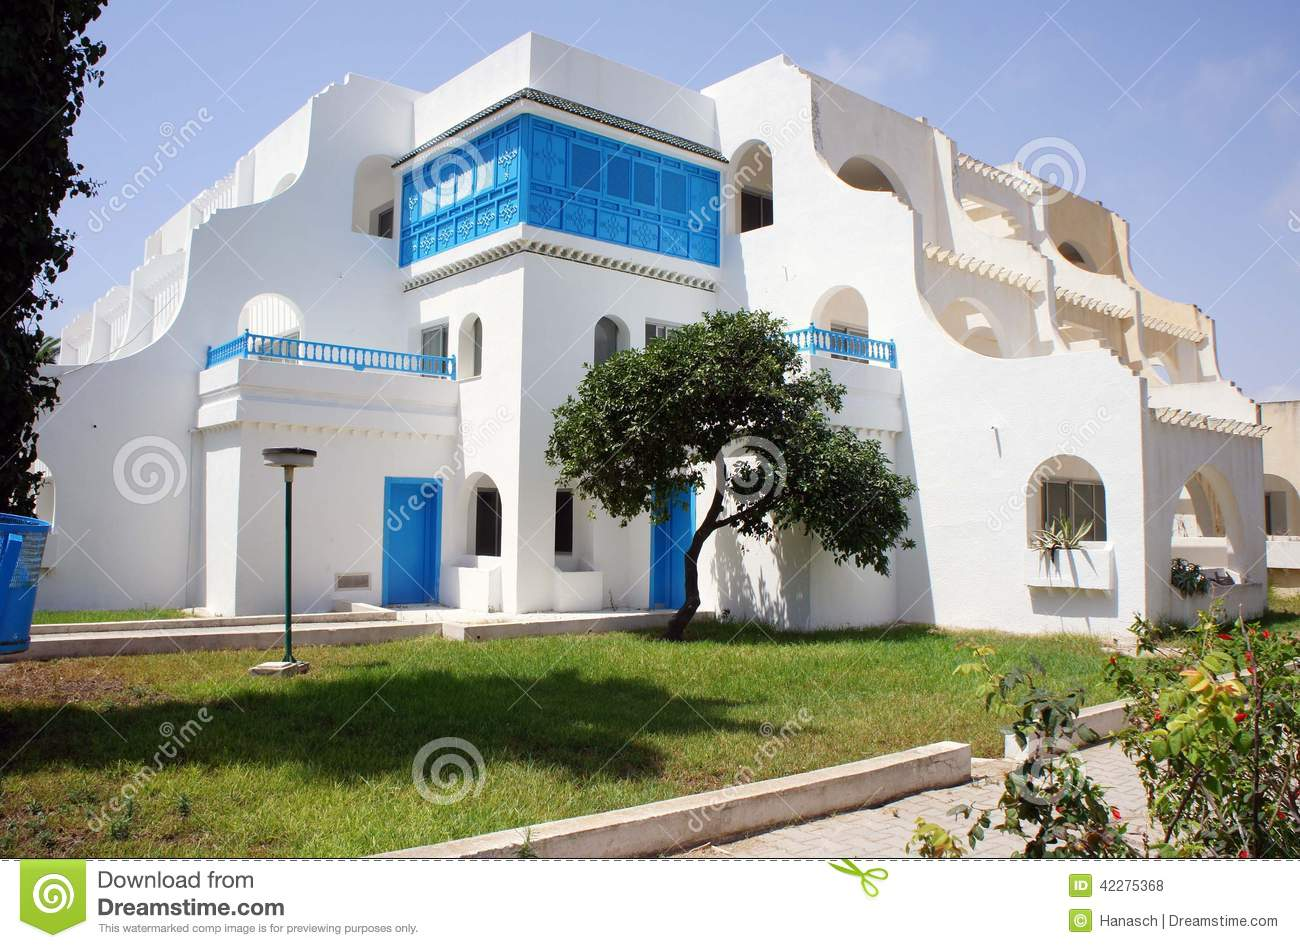 Maison de plage tunisienne photo stock image 42275368 for Architecture maison arabe